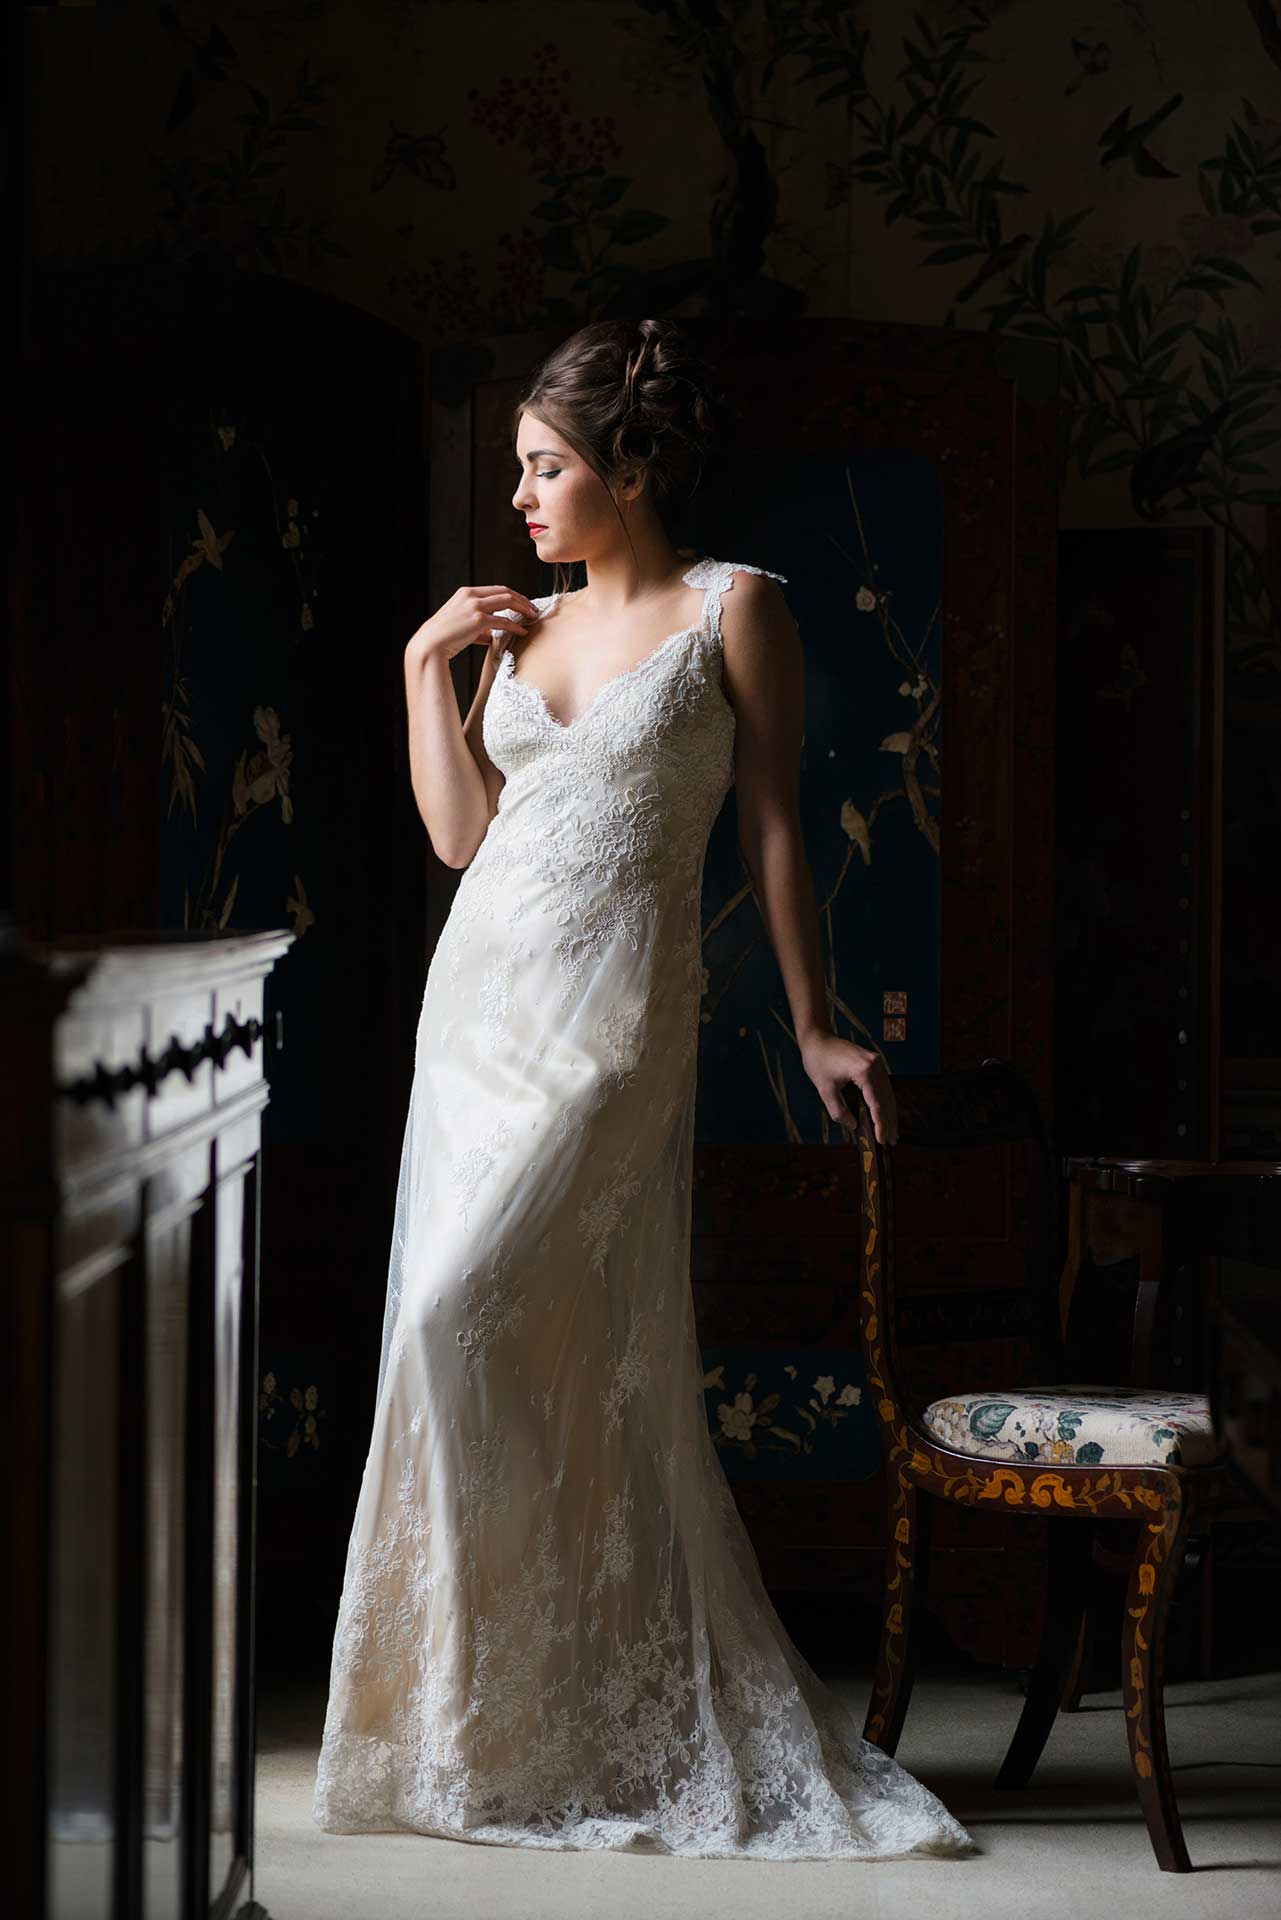 Bridal fashion shoot at Kelmarsh Hall